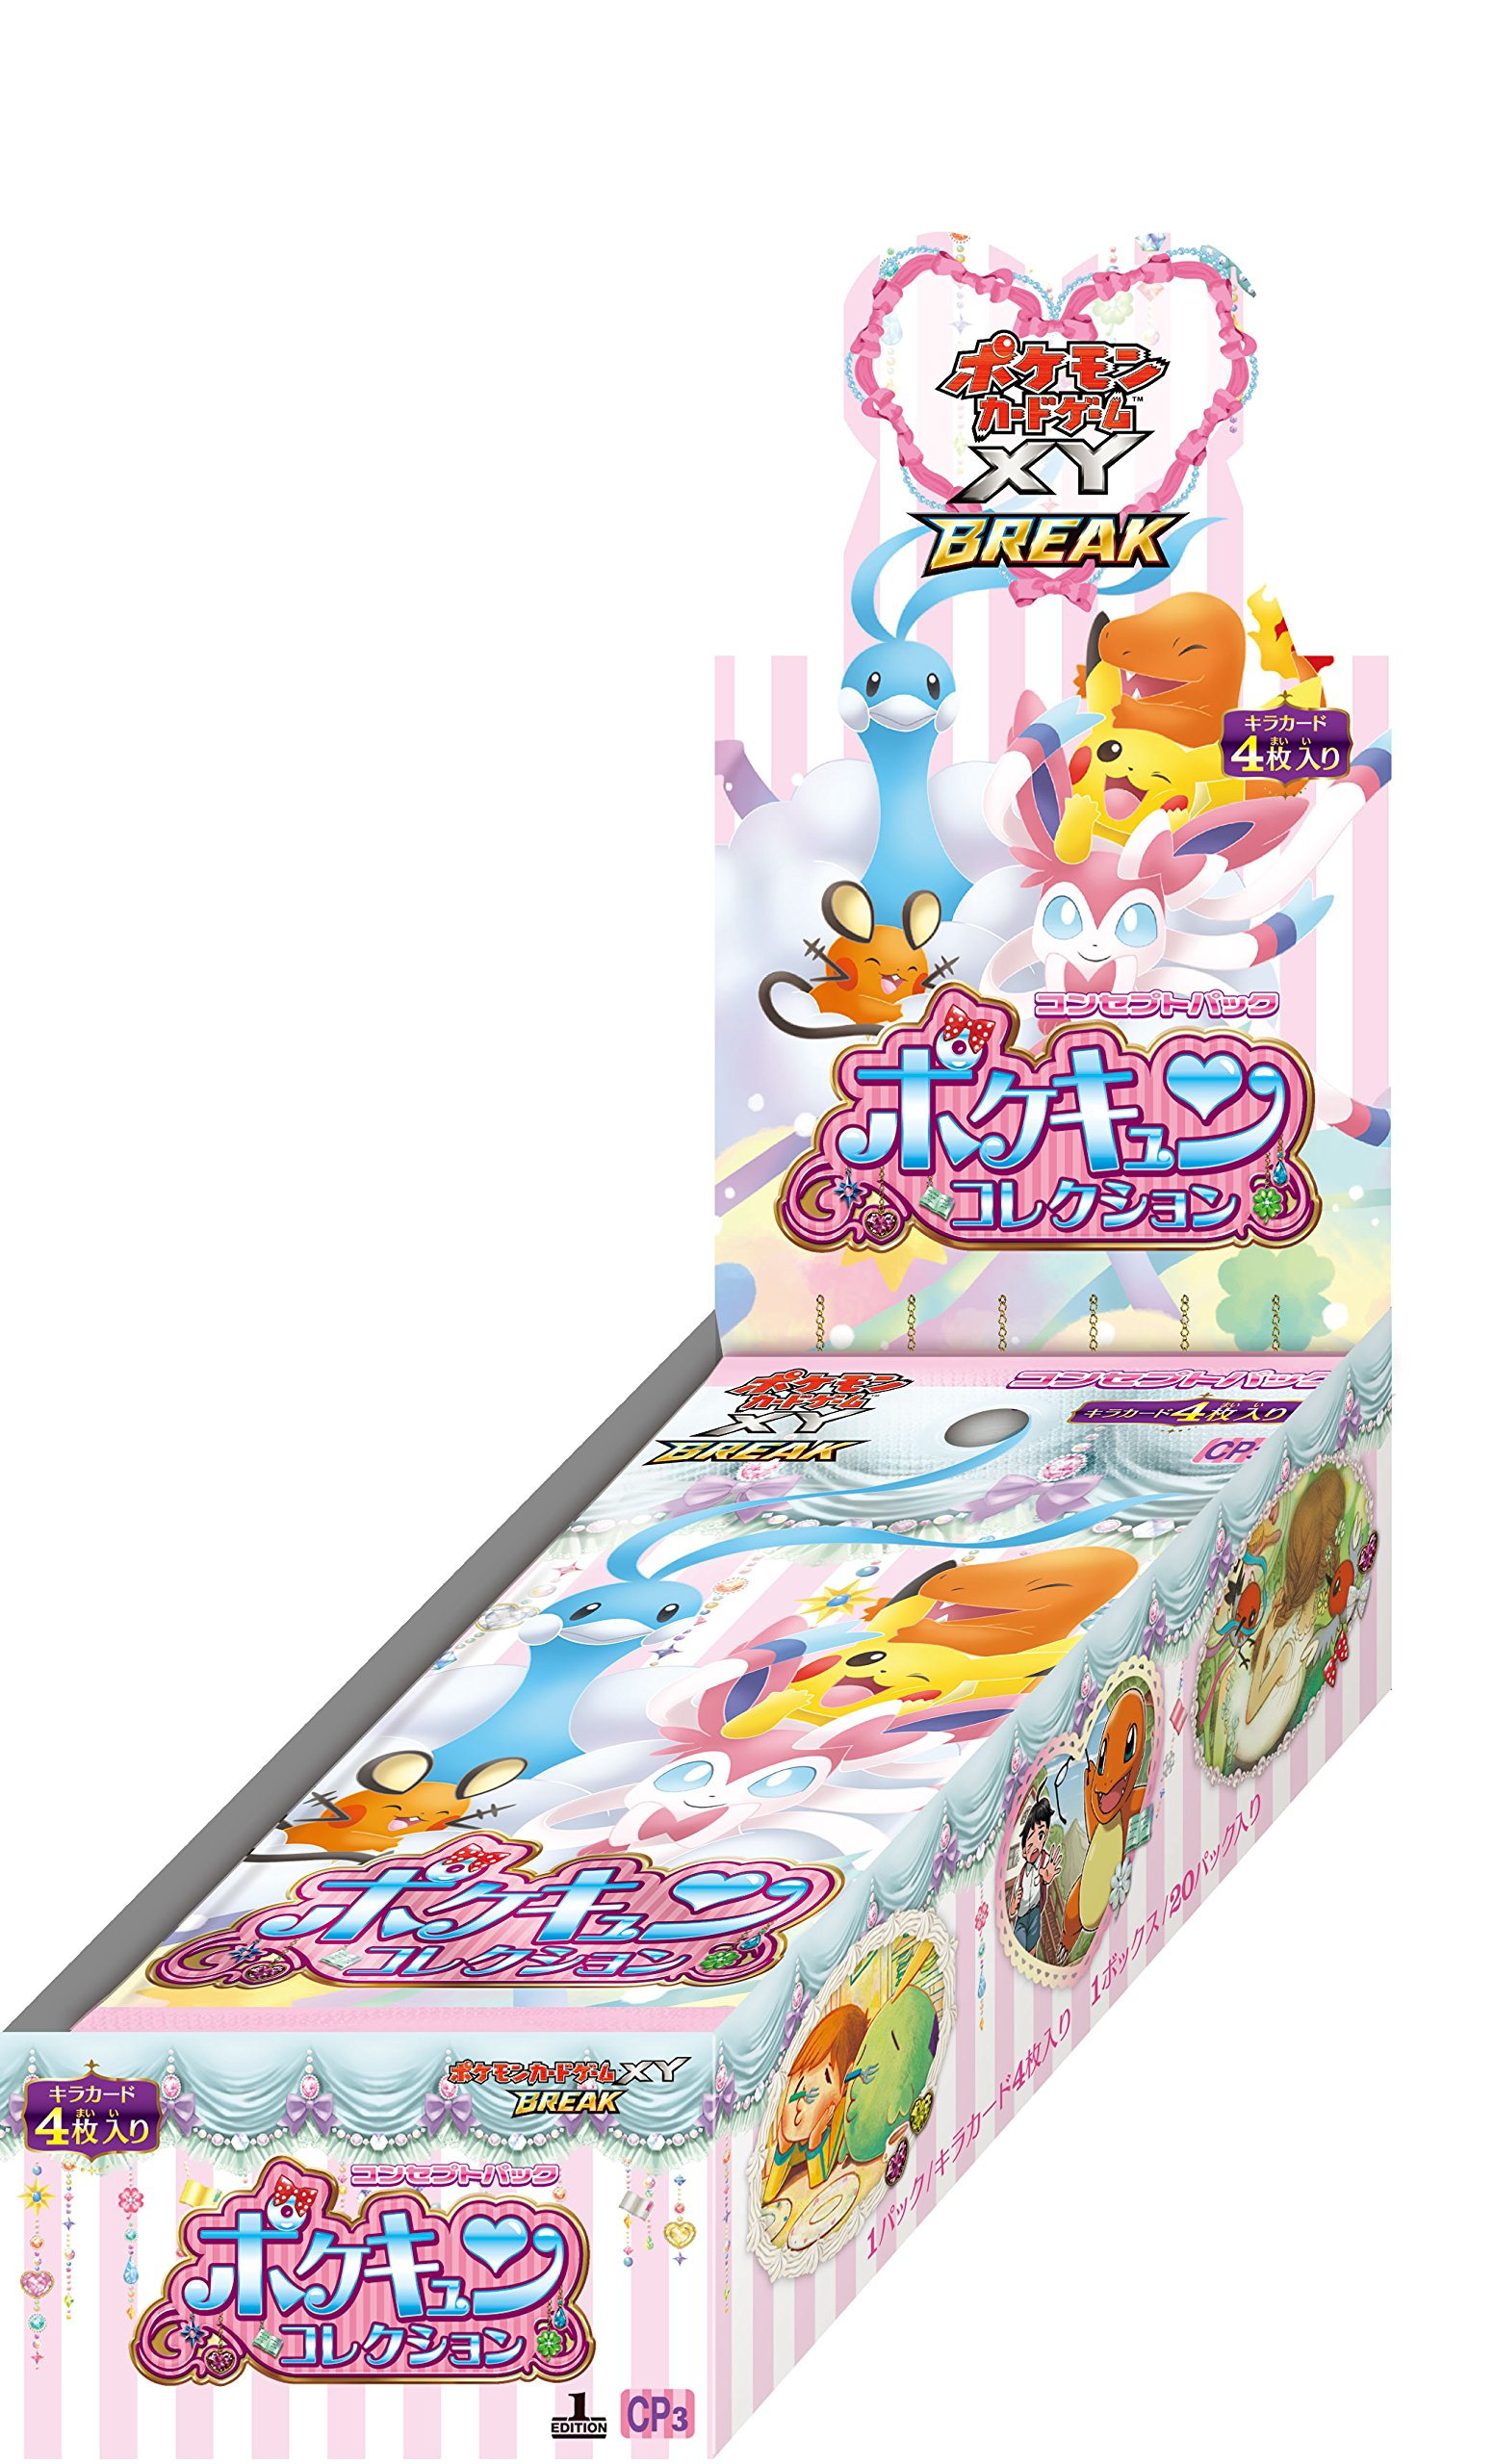 Pokemon Card XY Break Pokekyun / Cute Collection Kira Card Concept packs 1 BOX (Japanese Version) by Pokémon